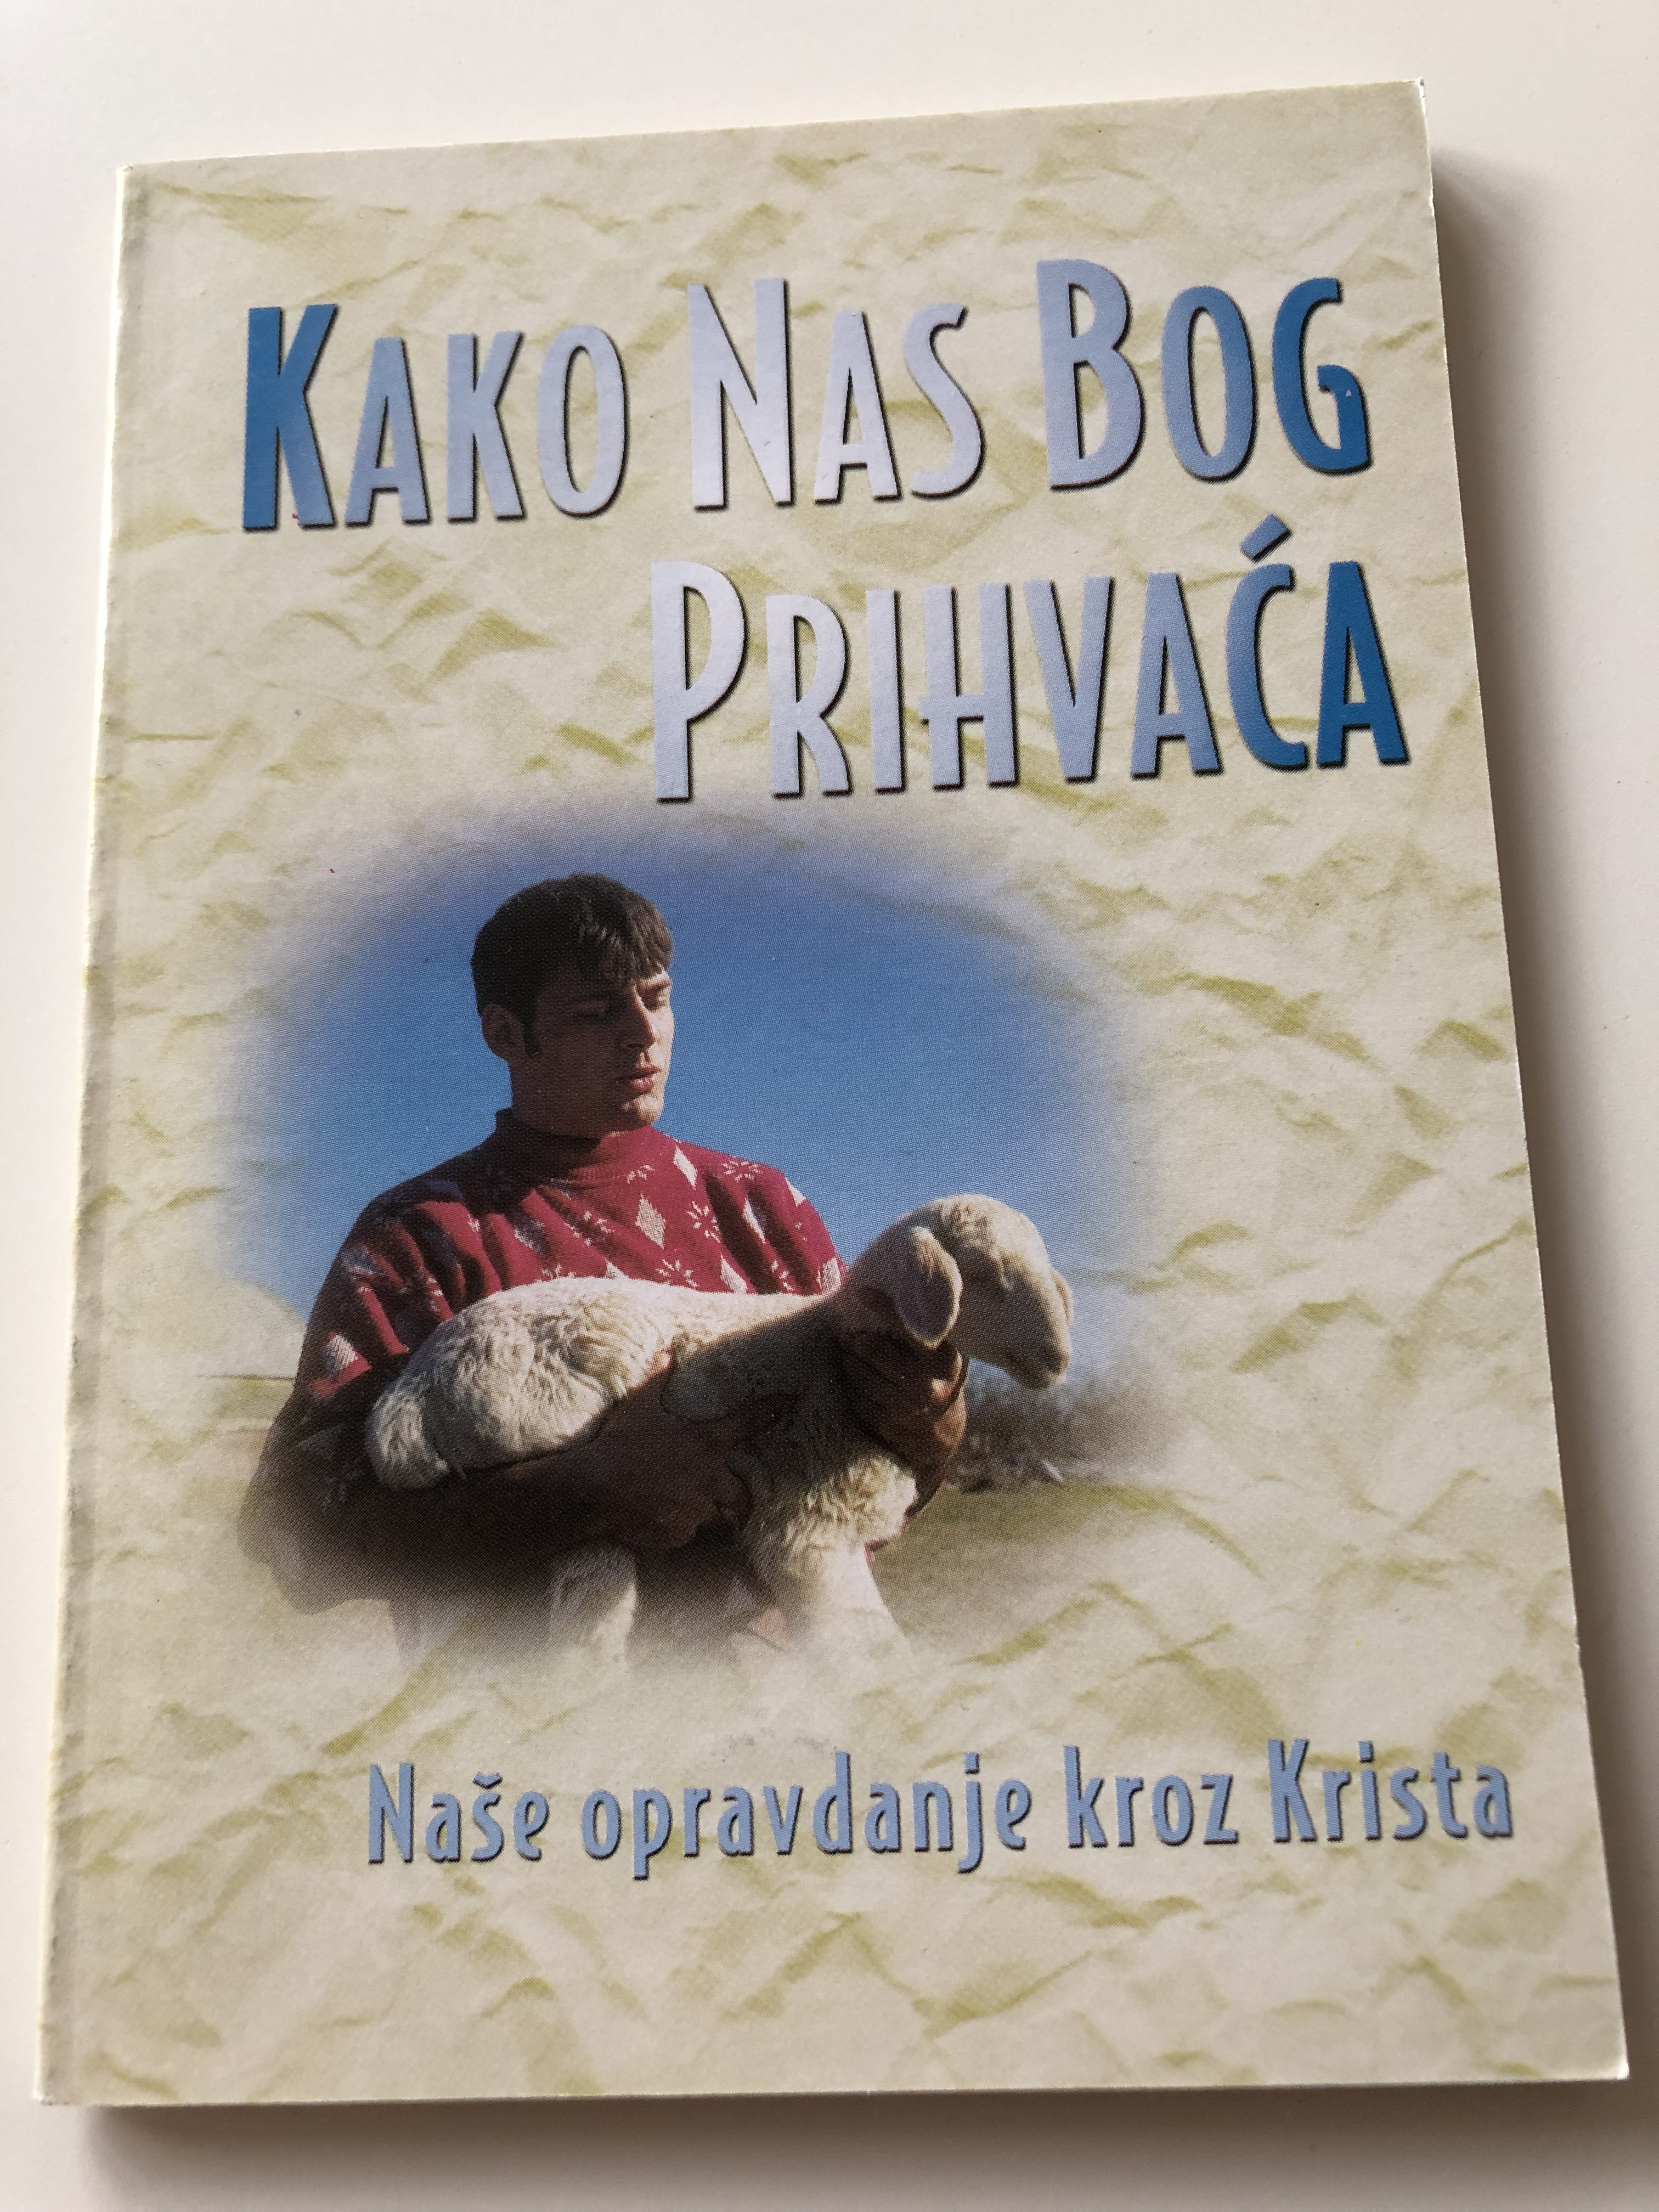 croatian-bible-booklet-for-new-believers-kako-nas-bog-prihvaca-accepted-by-god-1-.jpg